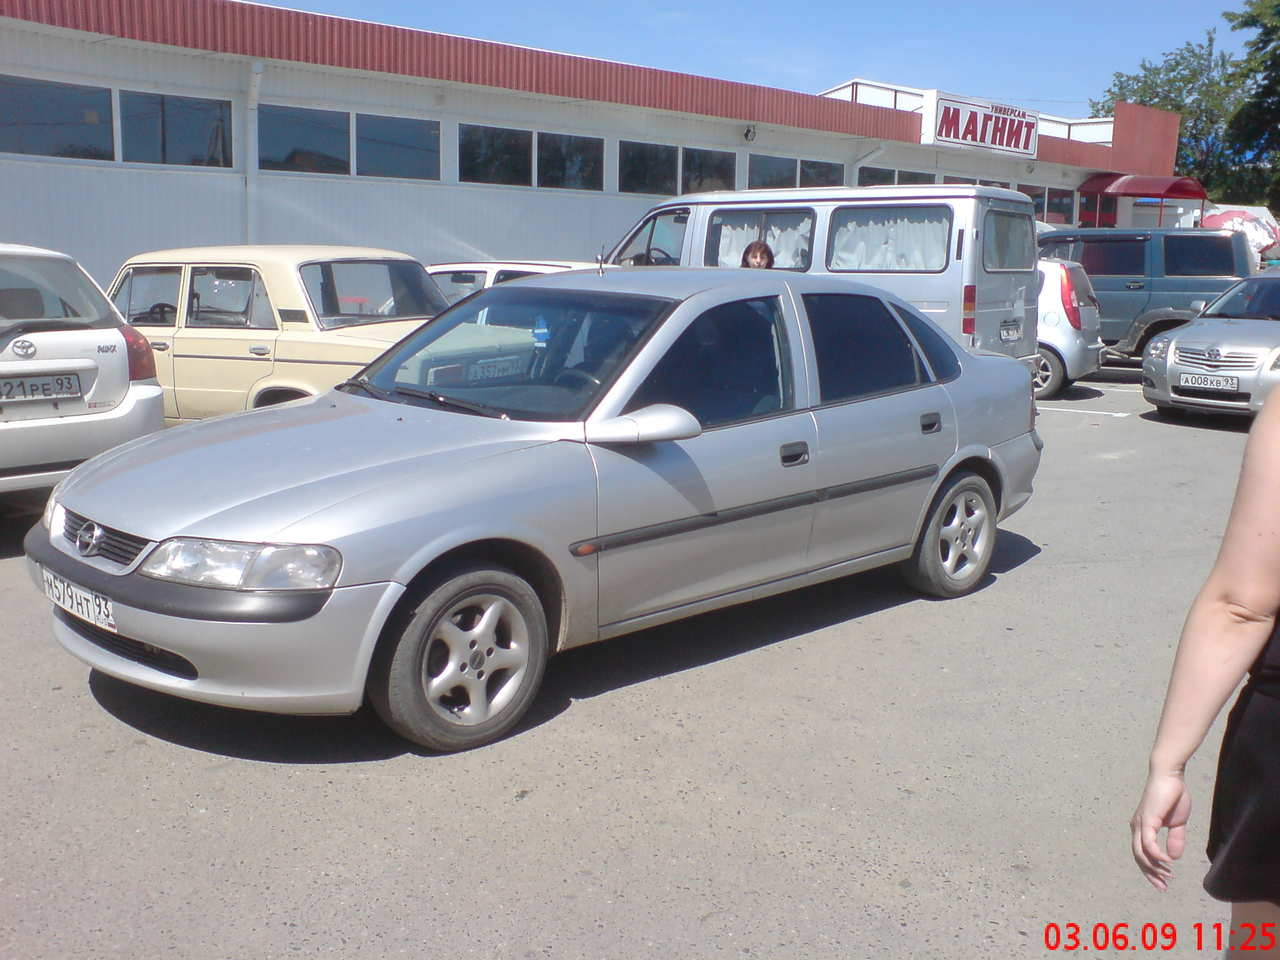 1997 OPEL Vectra. ← Is this a